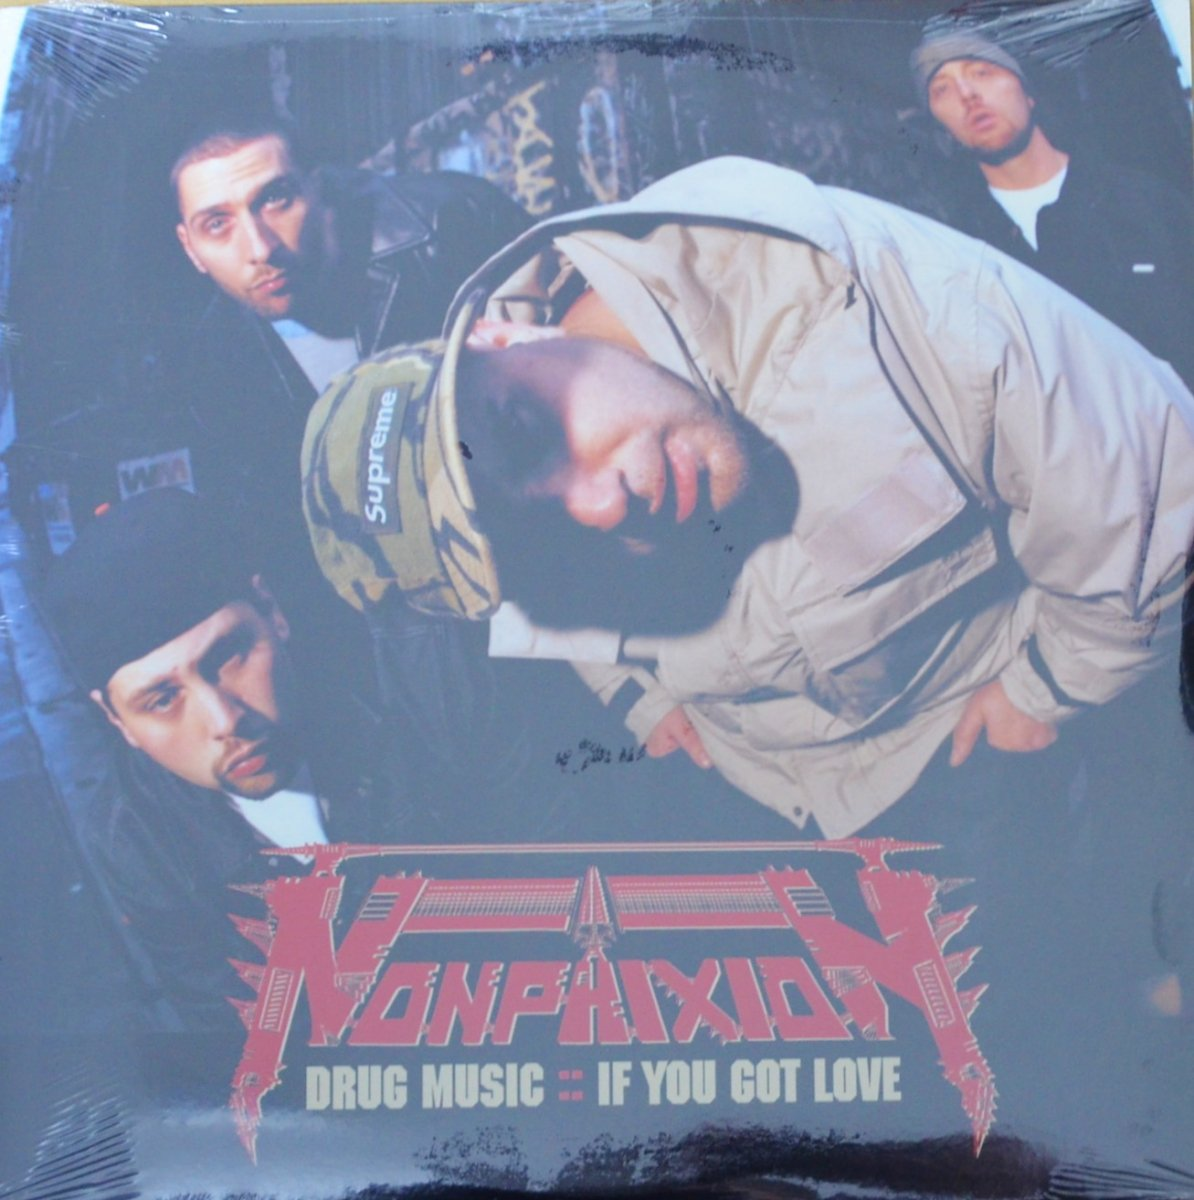 NON PHIXION / DRUG MUSIC (PROD BY LARGE PROFESSOR) / IF YOU GOT LOVE (PROD BY PETE ROCK) (12